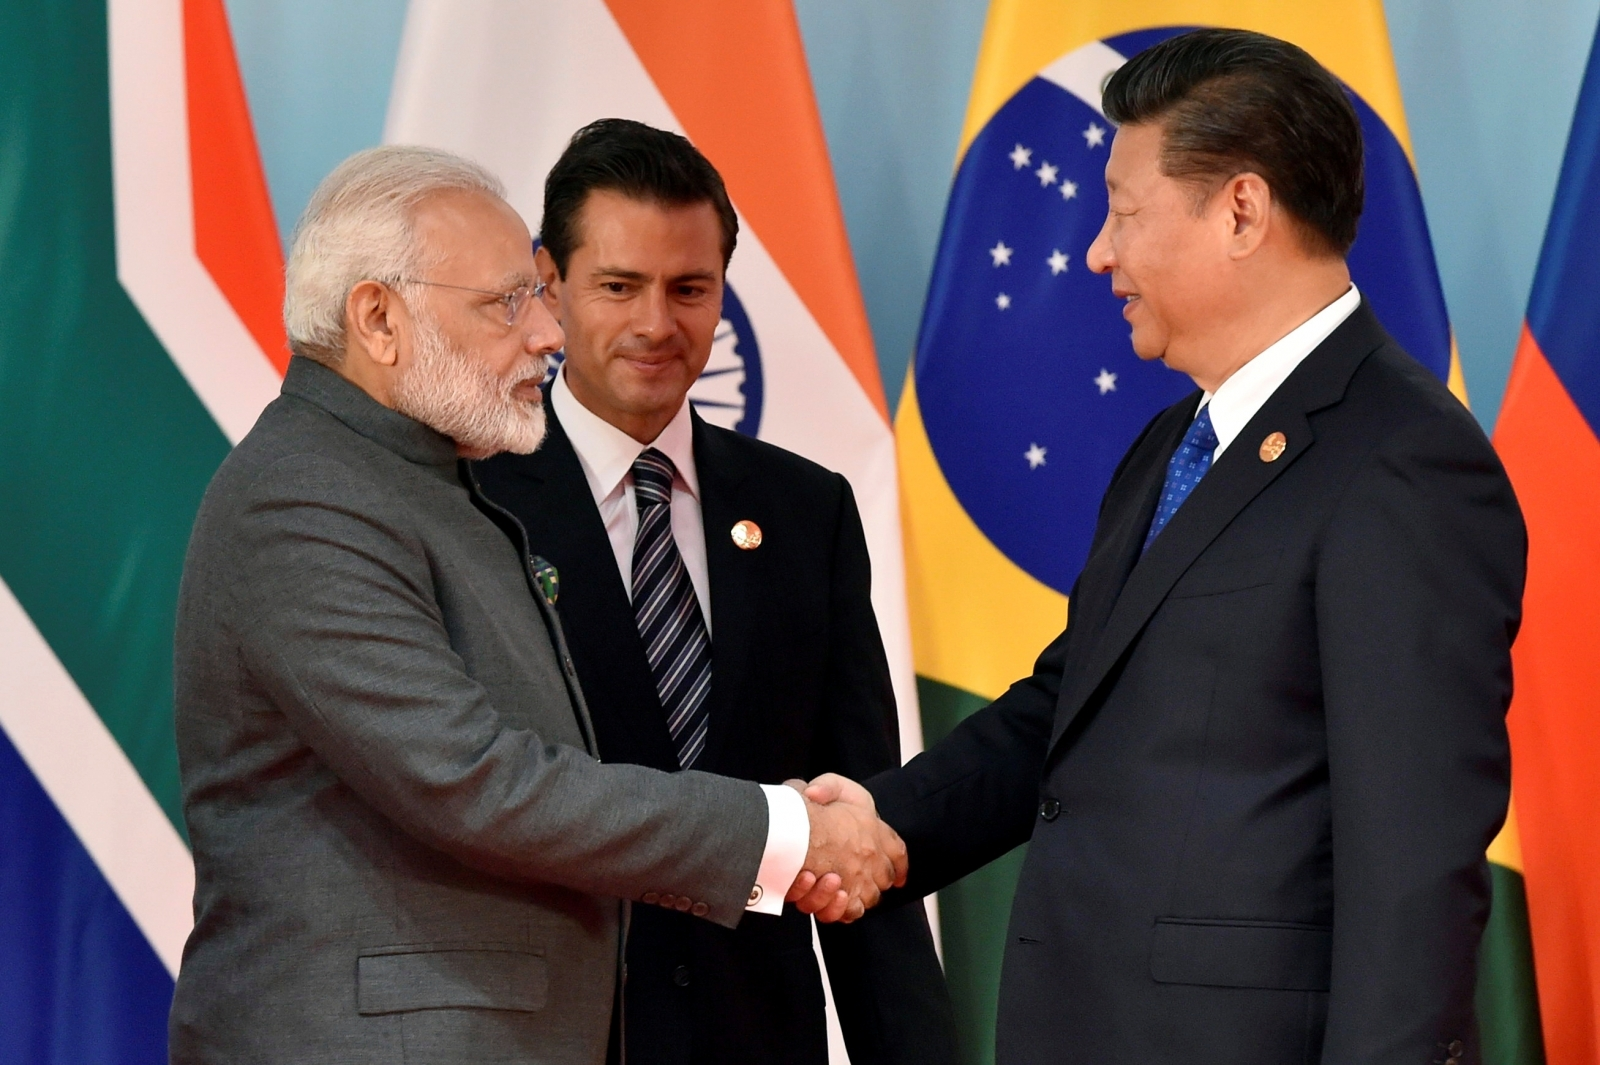 Brics summit: Modi, Xi Jinping meet for first time since Doklam standoff